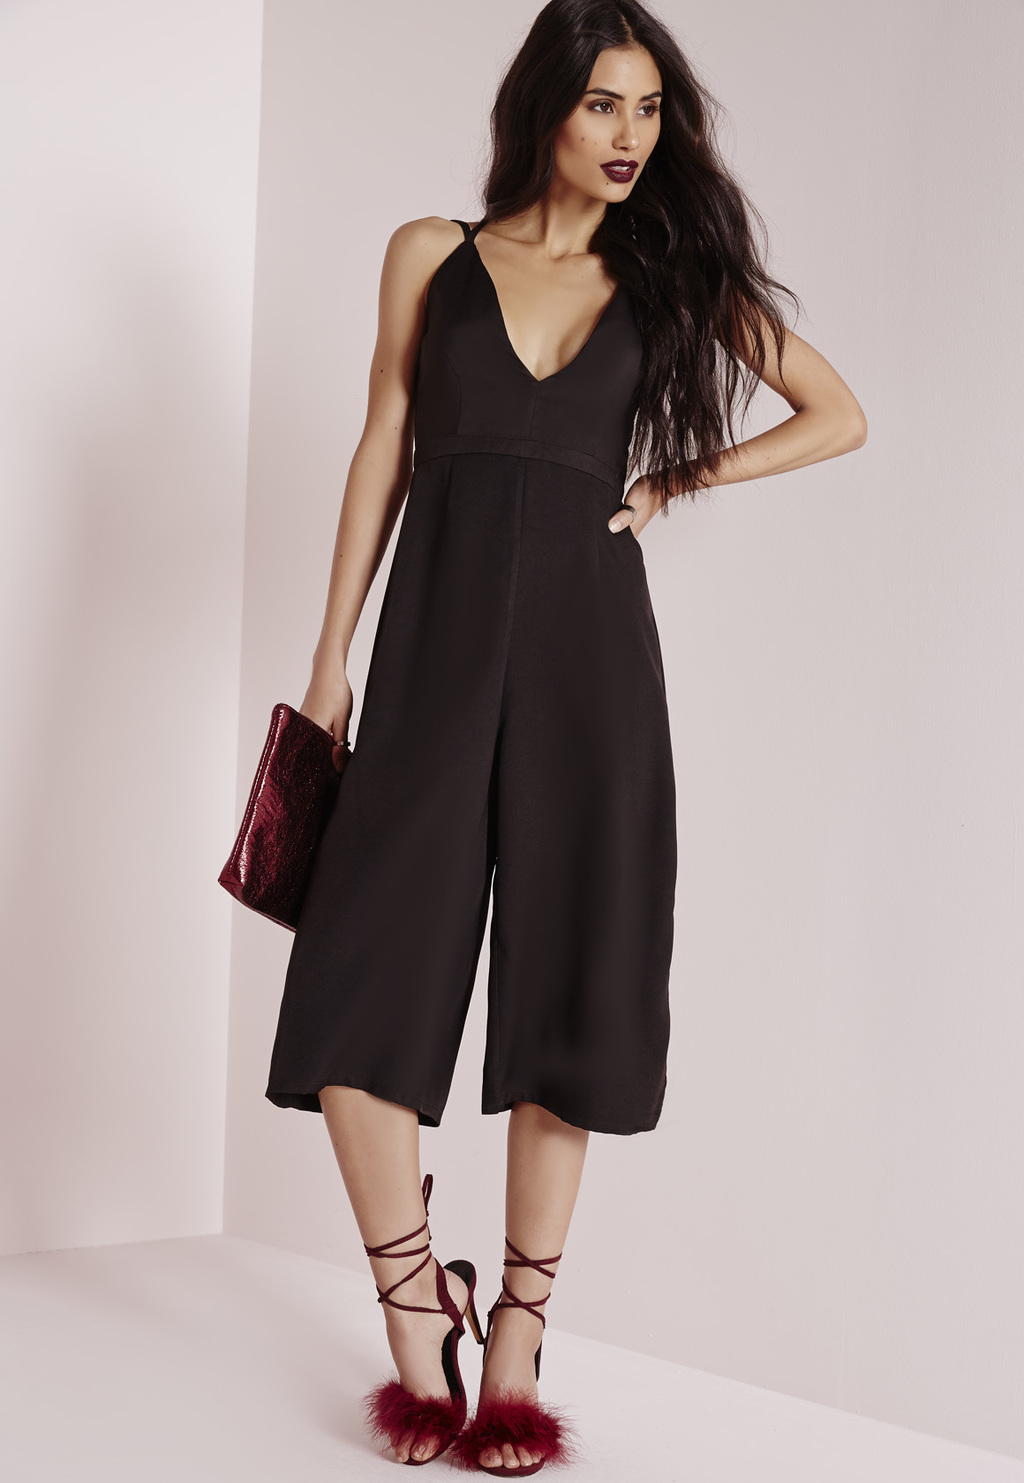 Petite Cross Back Culotte Jumpsuit Black, Black - neckline: low v-neck; sleeve style: spaghetti straps; pattern: plain; predominant colour: black; occasions: evening; length: calf length; fit: fitted at waist & bust; fibres: polyester/polyamide - 100%; back detail: crossover; sleeve length: sleeveless; texture group: crepes; style: jumpsuit; pattern type: fabric; season: a/w 2015; wardrobe: event